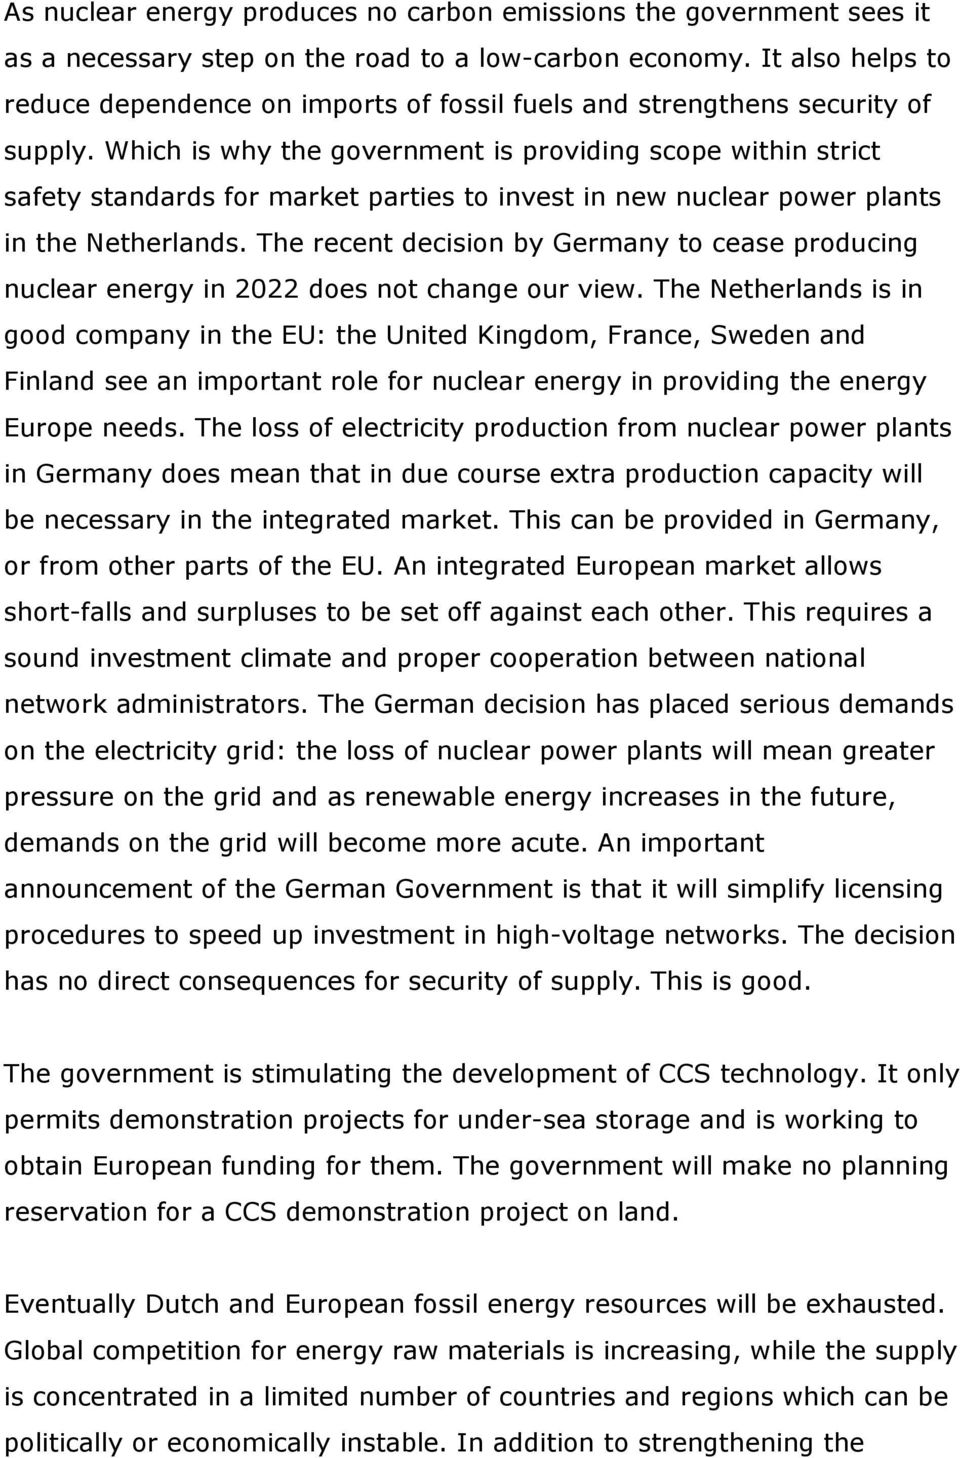 Which is why the government is providing scope within strict safety standards for market parties to invest in new nuclear power plants in the Netherlands.